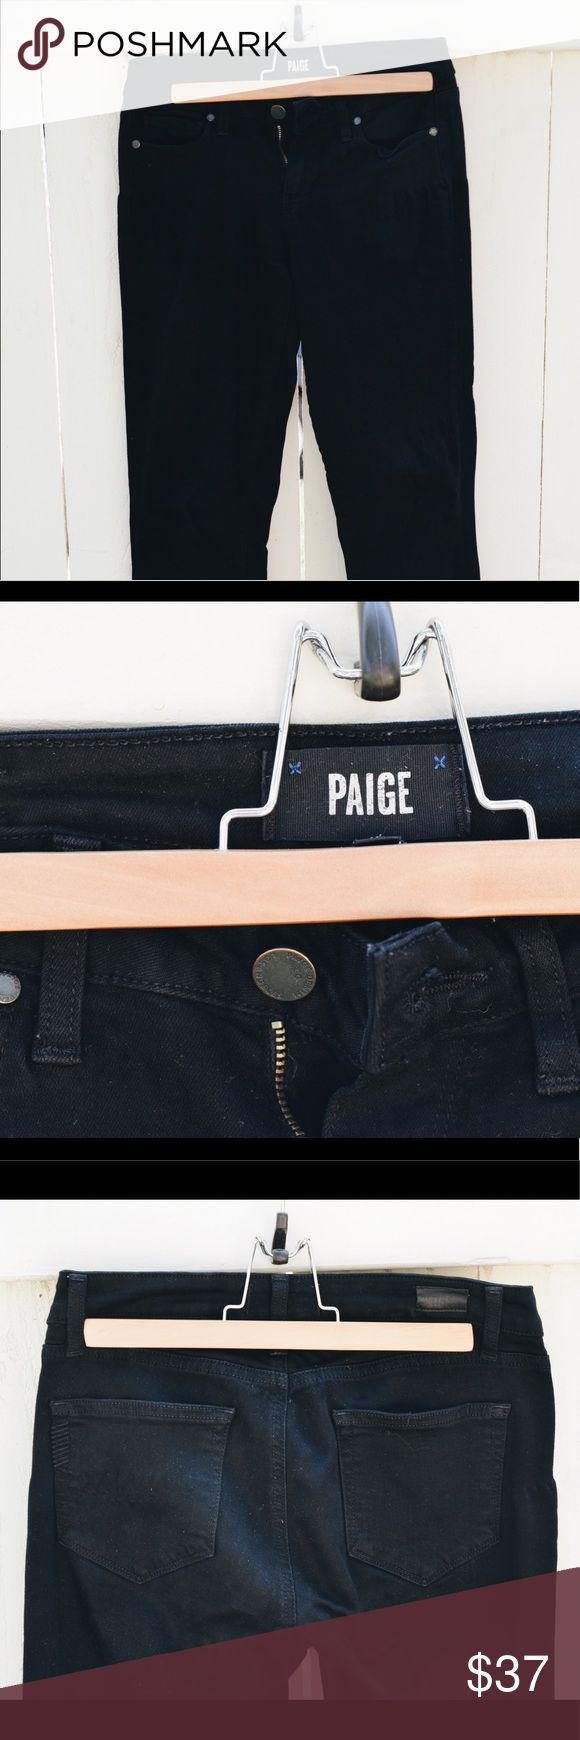 "PRICE ⬇️ (1 HOUR) PAIGE Verdugo Ultra Skinny Jeans PAIGE DENIM jeans in Black Shadow wash. So soft, they feel like leggings! A ""win style"" AND comfort-wise. An amazing deal for a quality pair of jeans you won't want to take off. NOTE: front of pant legs appear distressed upon first glance but look normal when worn. PAIGE Jeans Skinny"